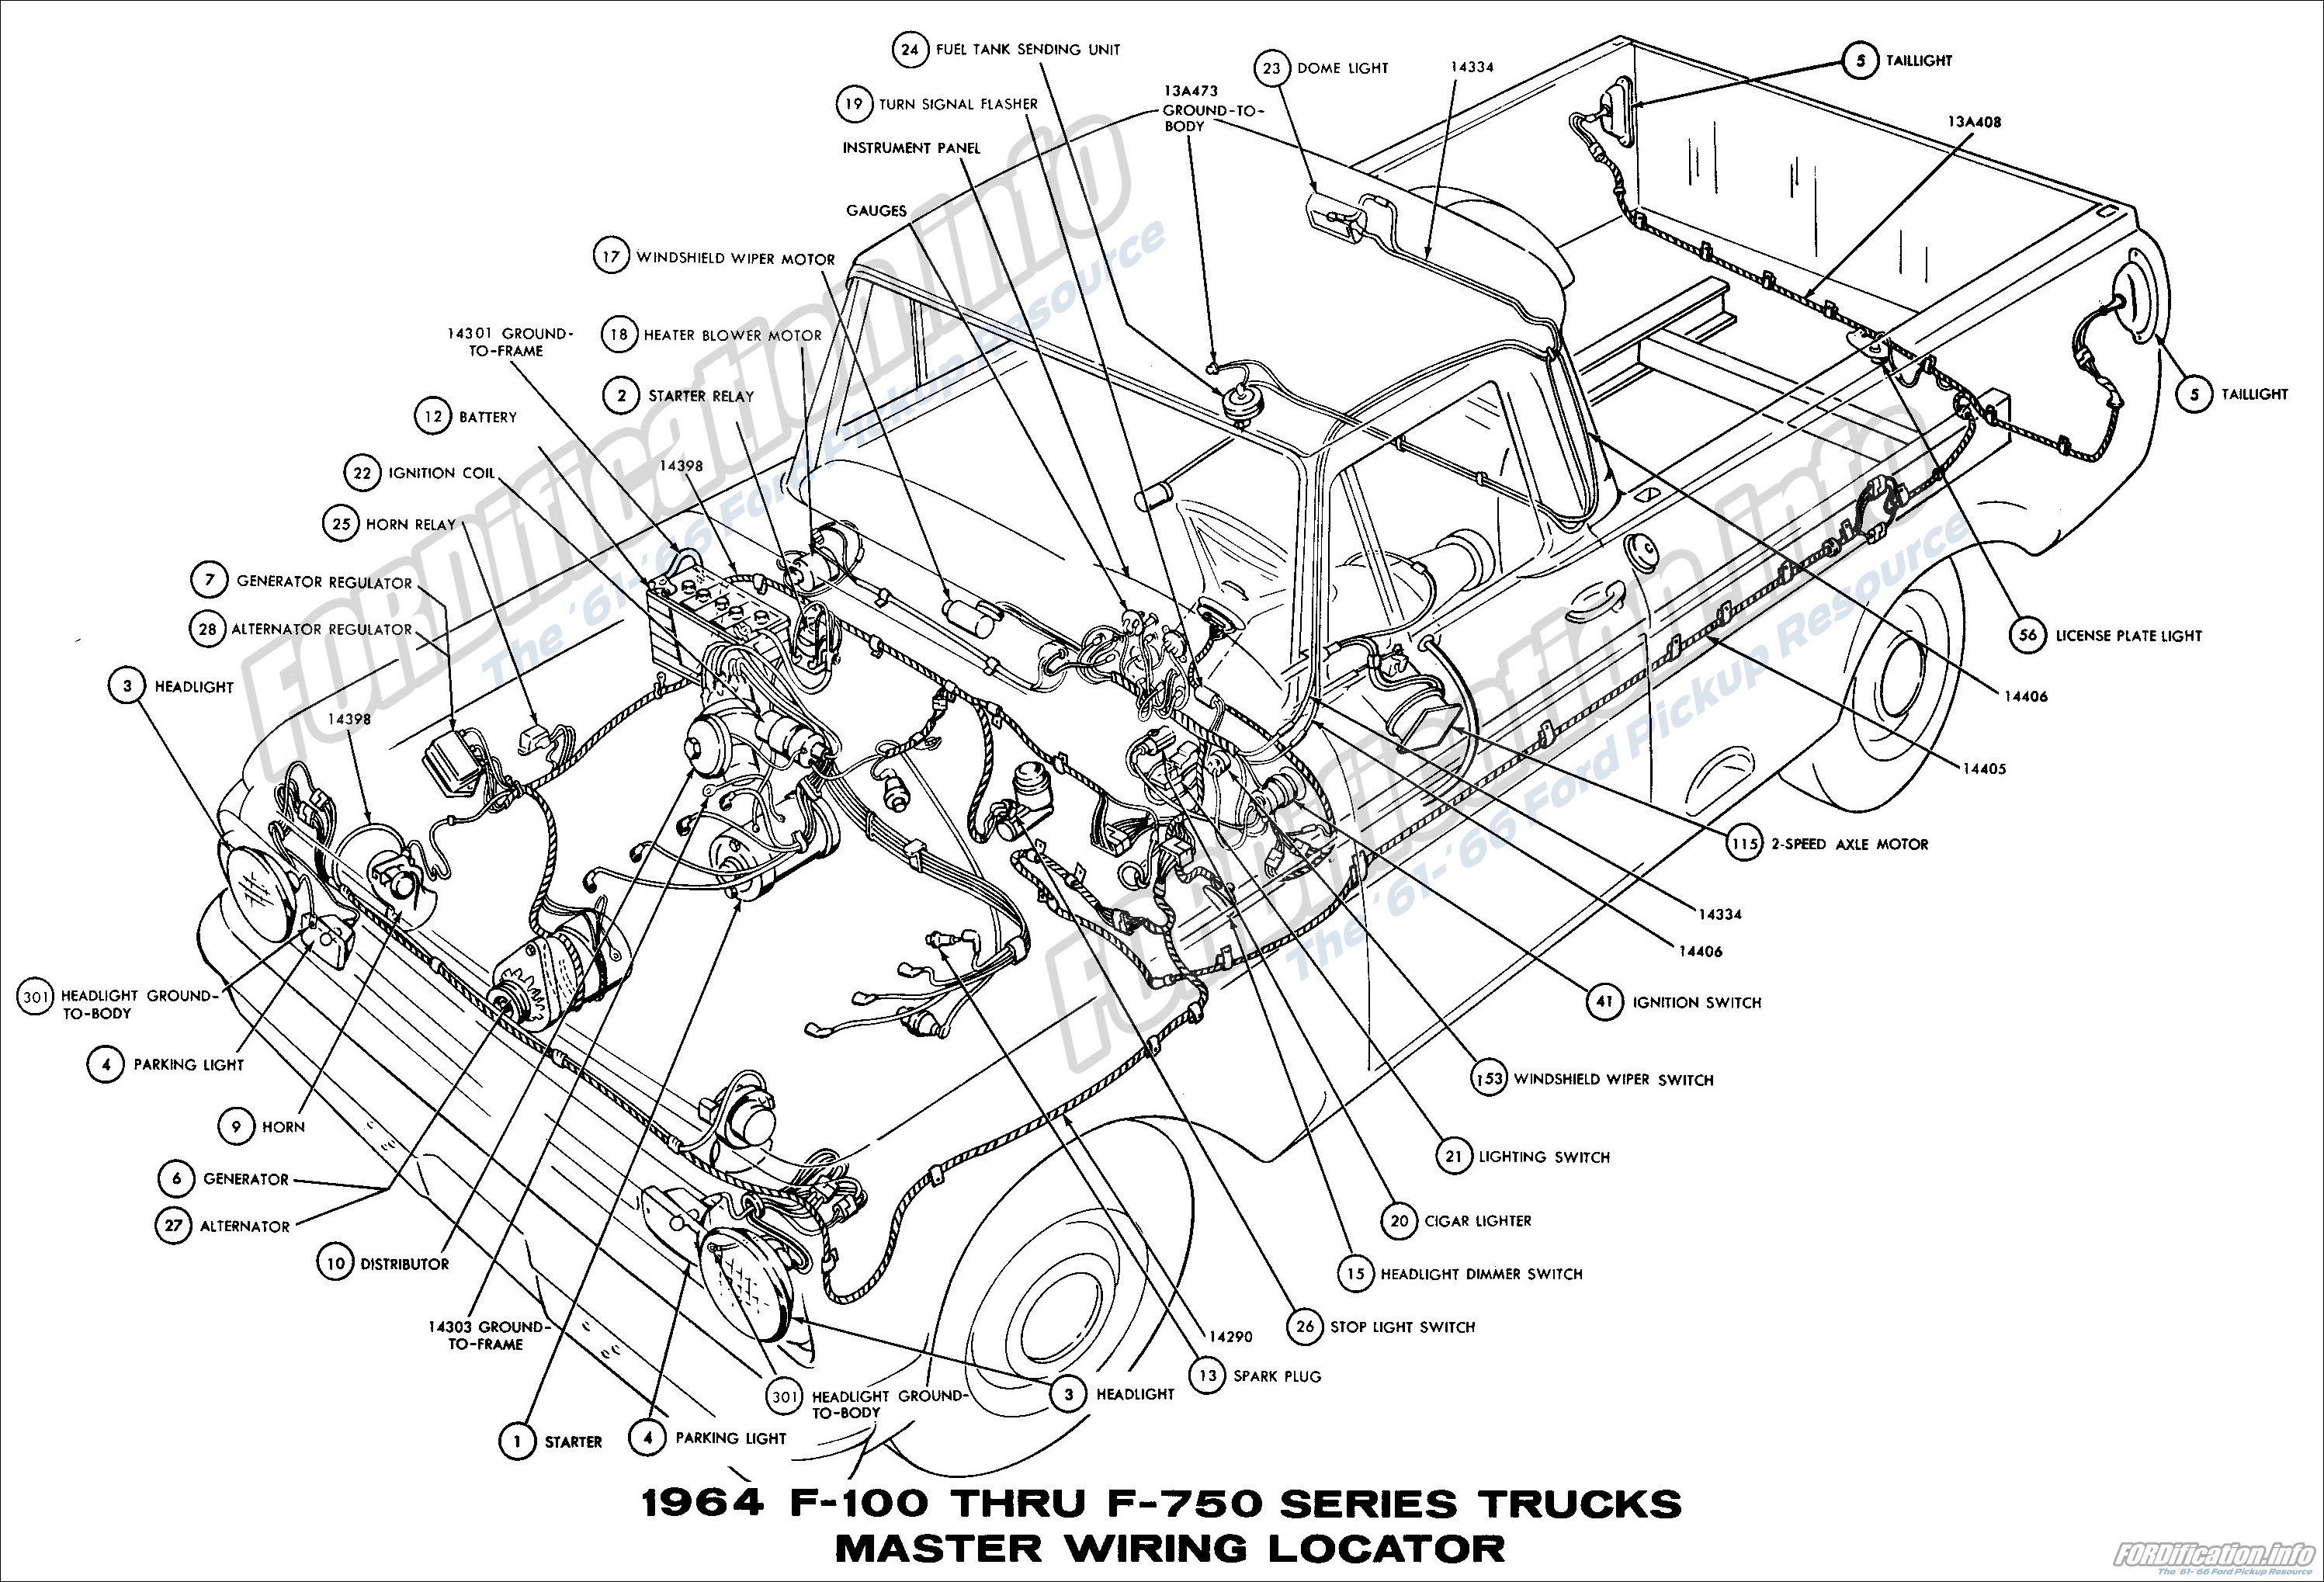 Ford Truck Wiring - Wiring Diagram Expert on 1964 ford f100 frame, 1930 ford model a wiring diagram, 1964 ford f100 power steering, 1964 ford f100 fuel gauge, 1964 pontiac gto wiring diagram, 1964 ford f100 brakes, 1964 ford mustang wiring diagram, 1976 chevy corvette wiring diagram, 1964 ford f100 seats, 1964 ford f100 transmission, 1964 ford ignition switch diagram, 1964 ford f100 heater, 79 mustang wiring diagram, 1962 ford fairlane wiring diagram, 1985 ford f-250 wiring diagram, 1964 ford f100 carburetor, ford 6 cylinder engine diagram, 1964 ford f100 wheels, 1964 buick skylark wiring diagram, 1964 ford ranchero wiring-diagram,